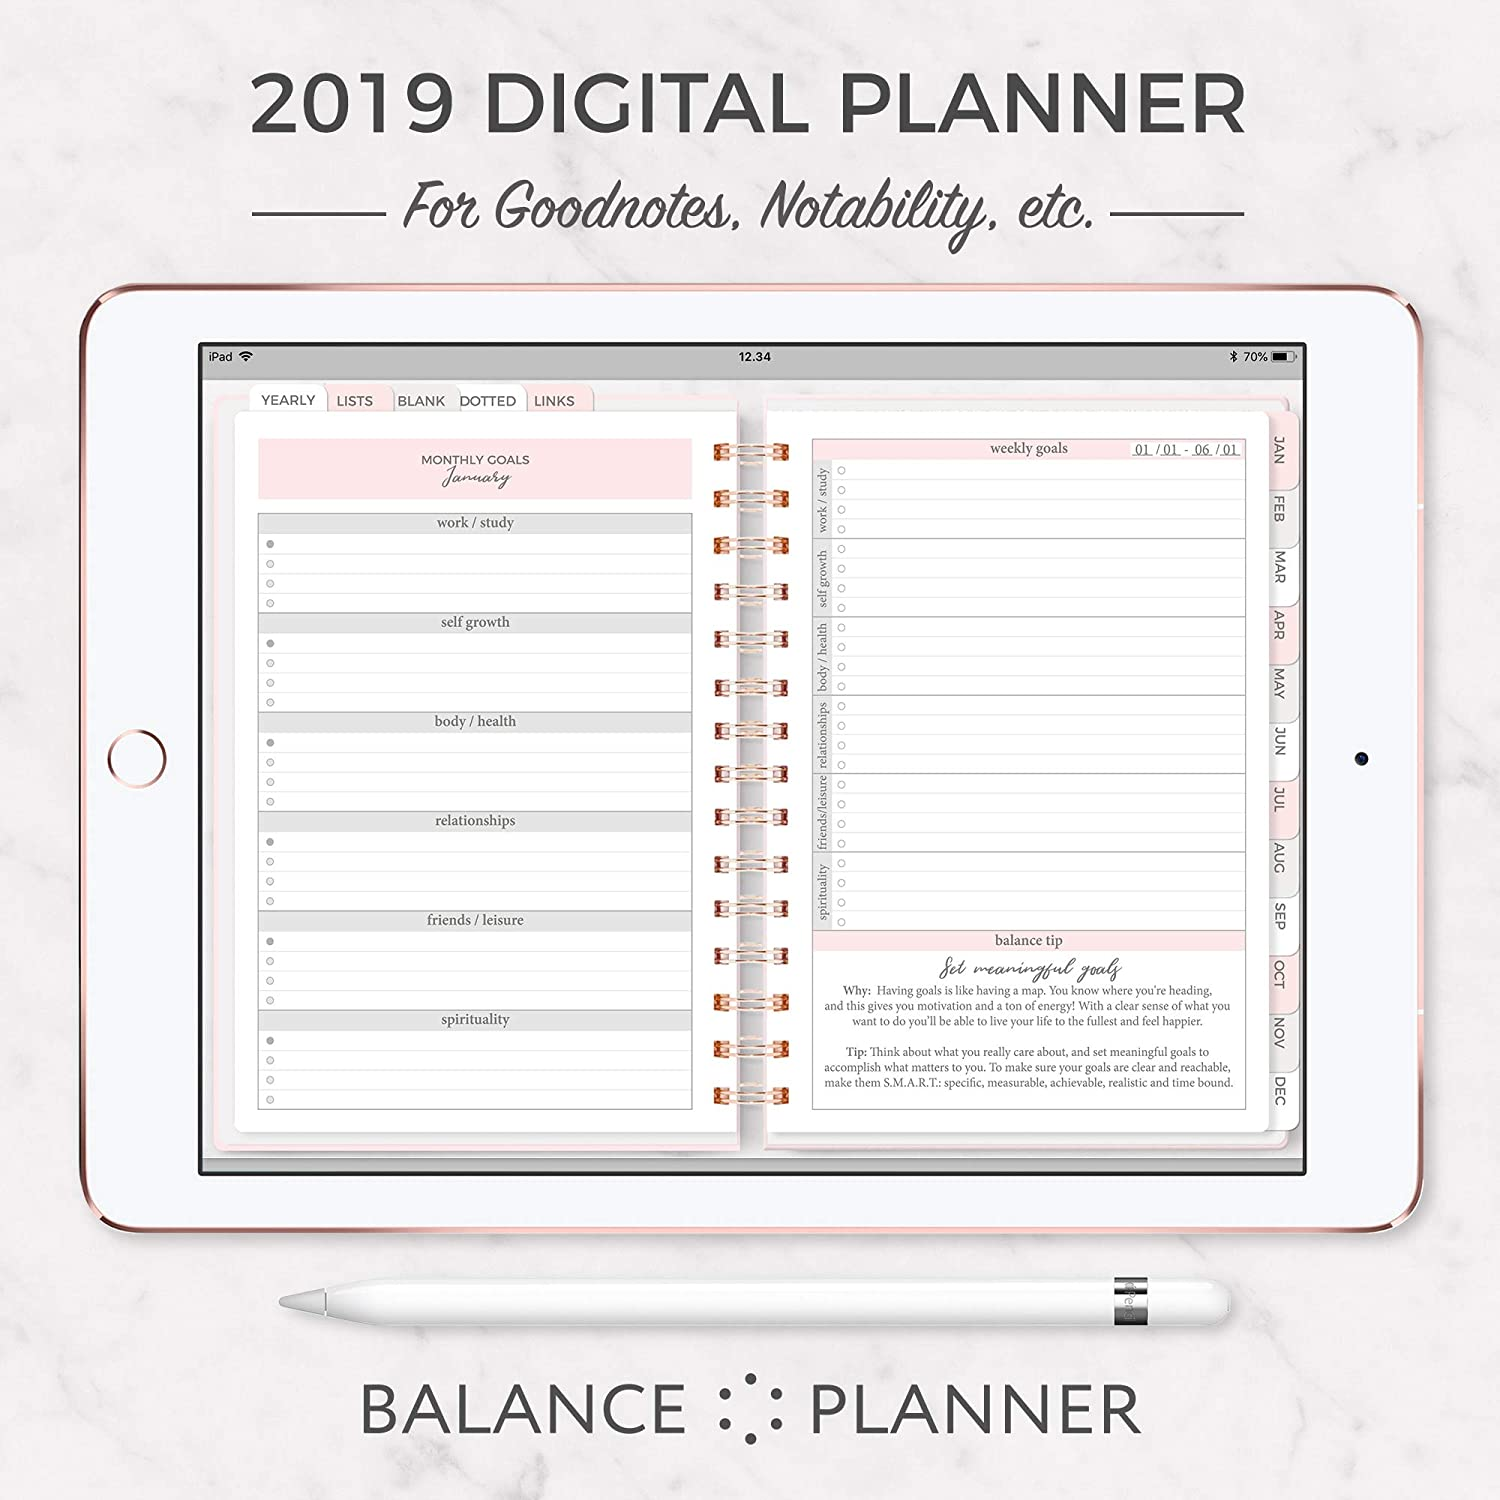 image relating to Digital Day Planner identified as : Electronic Planner for iPAD 2019 Dated Goodnotes